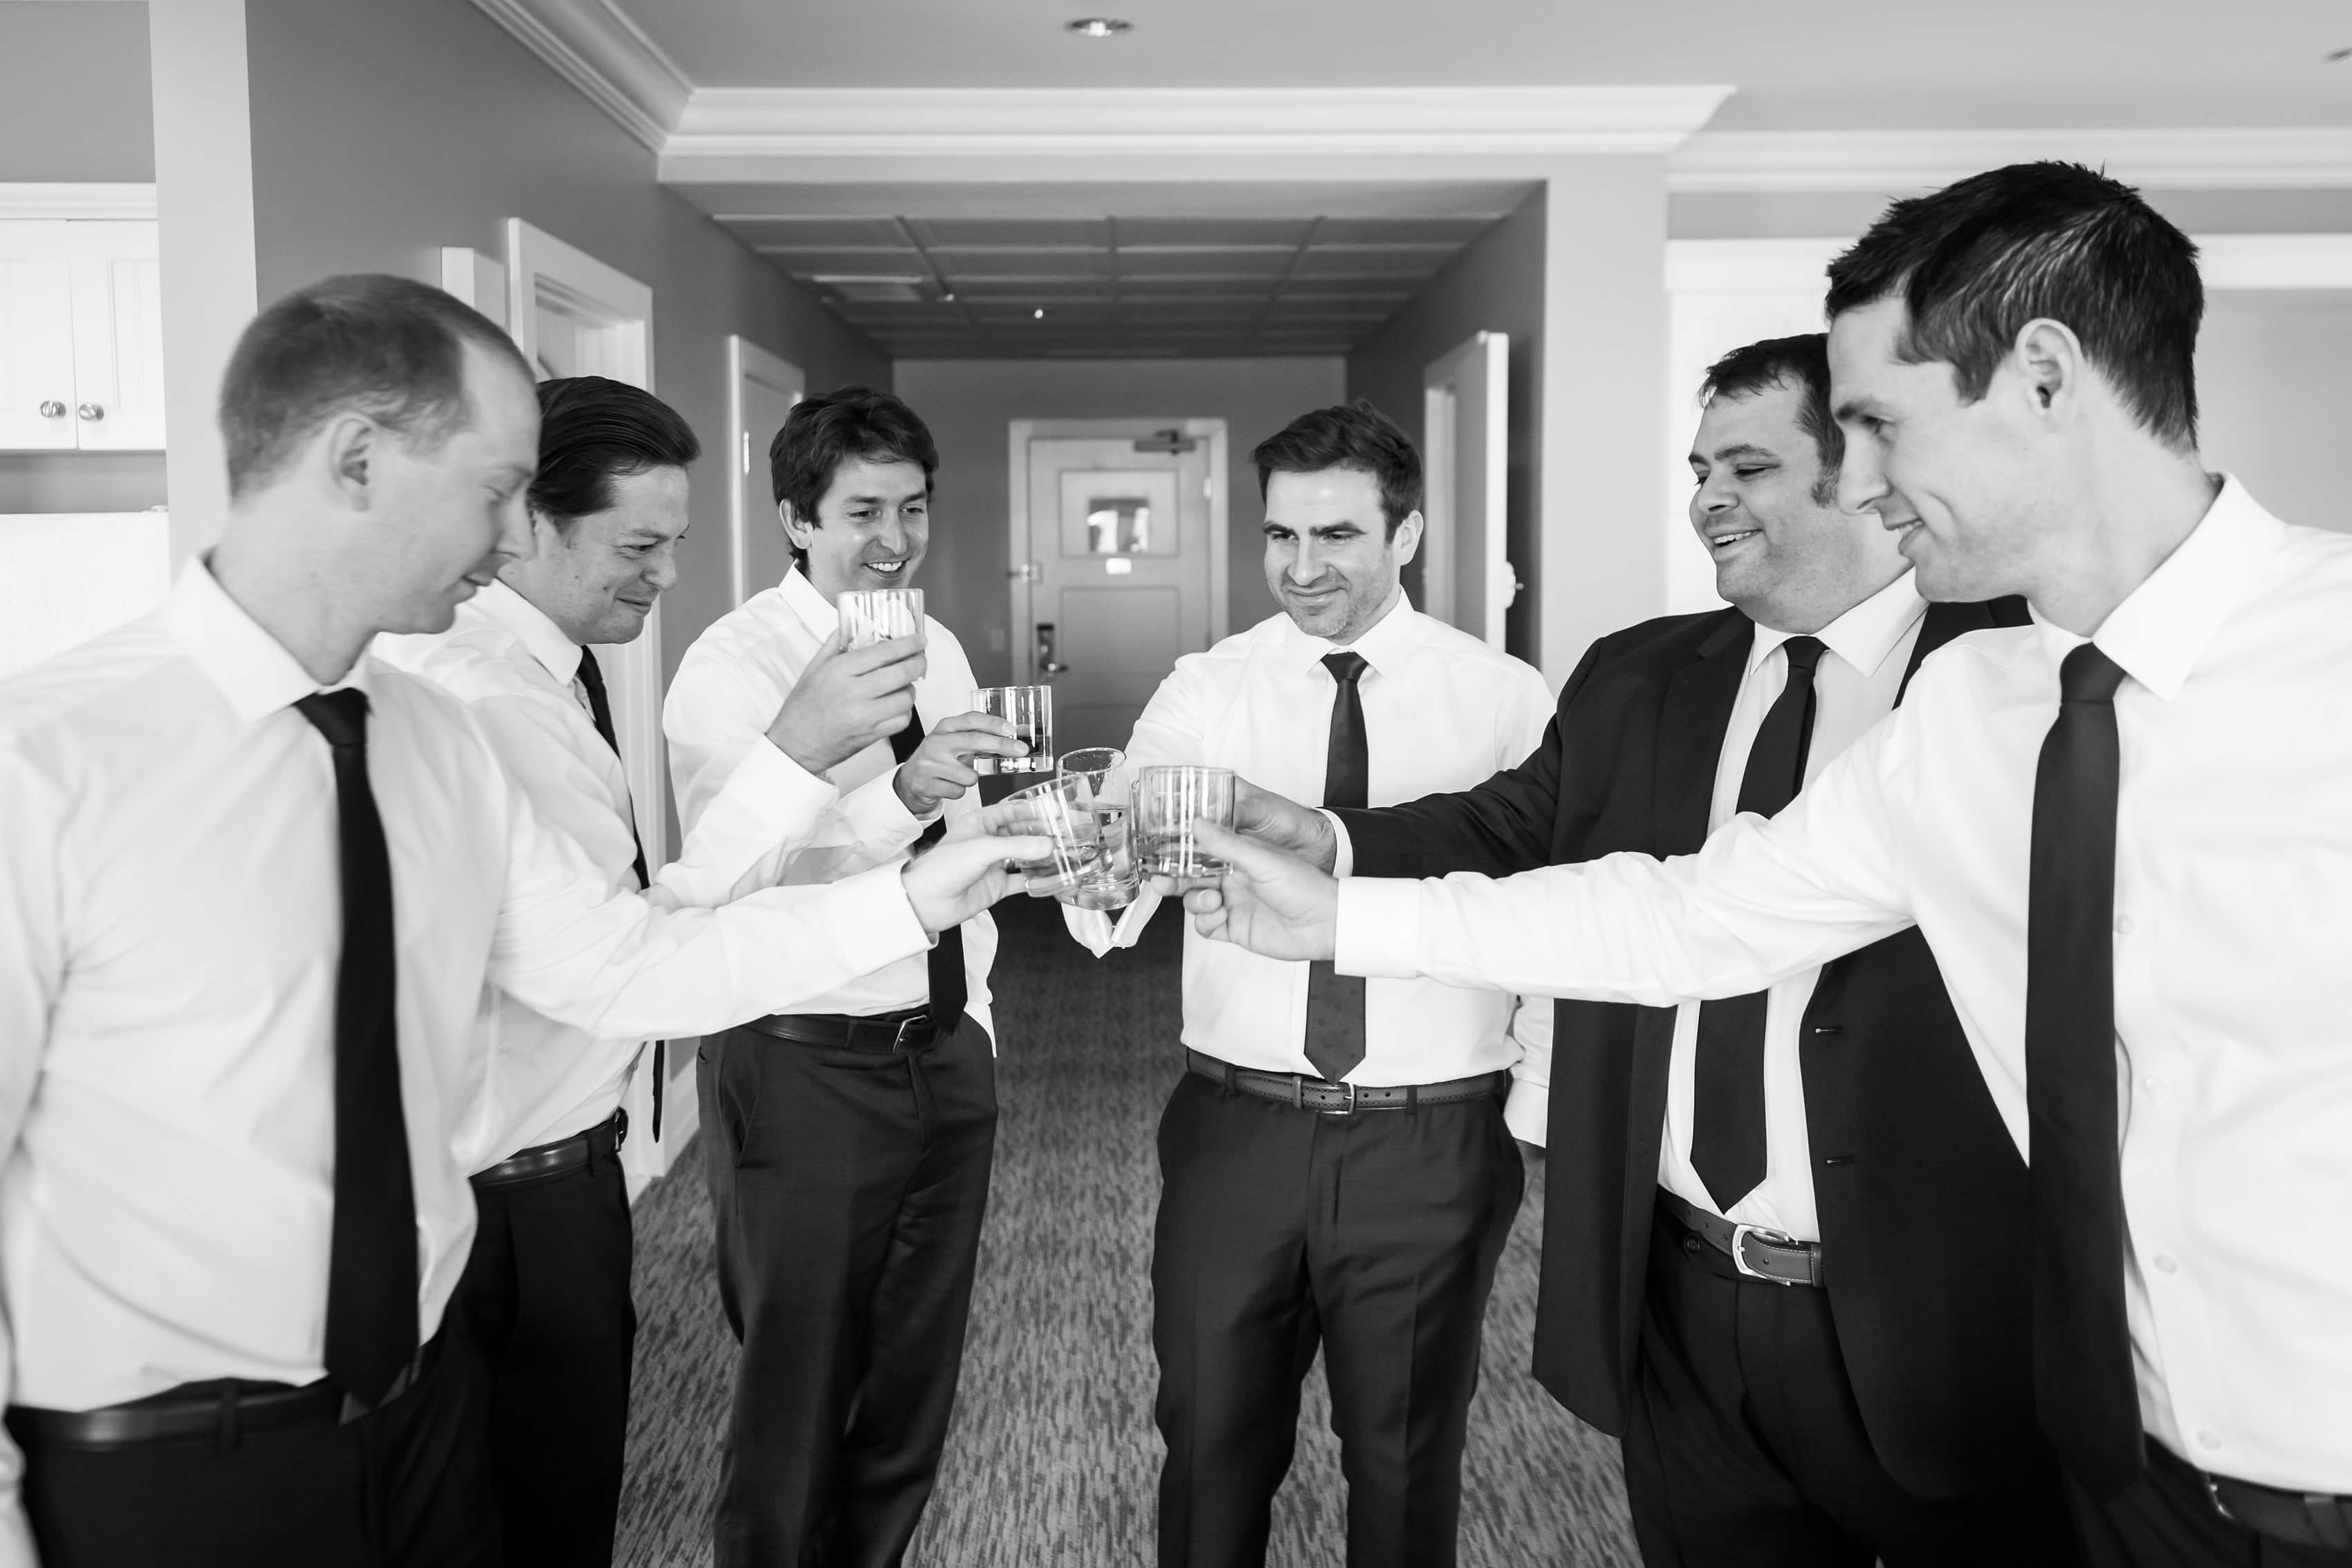 groomsmen raise glasses for toast before wedding